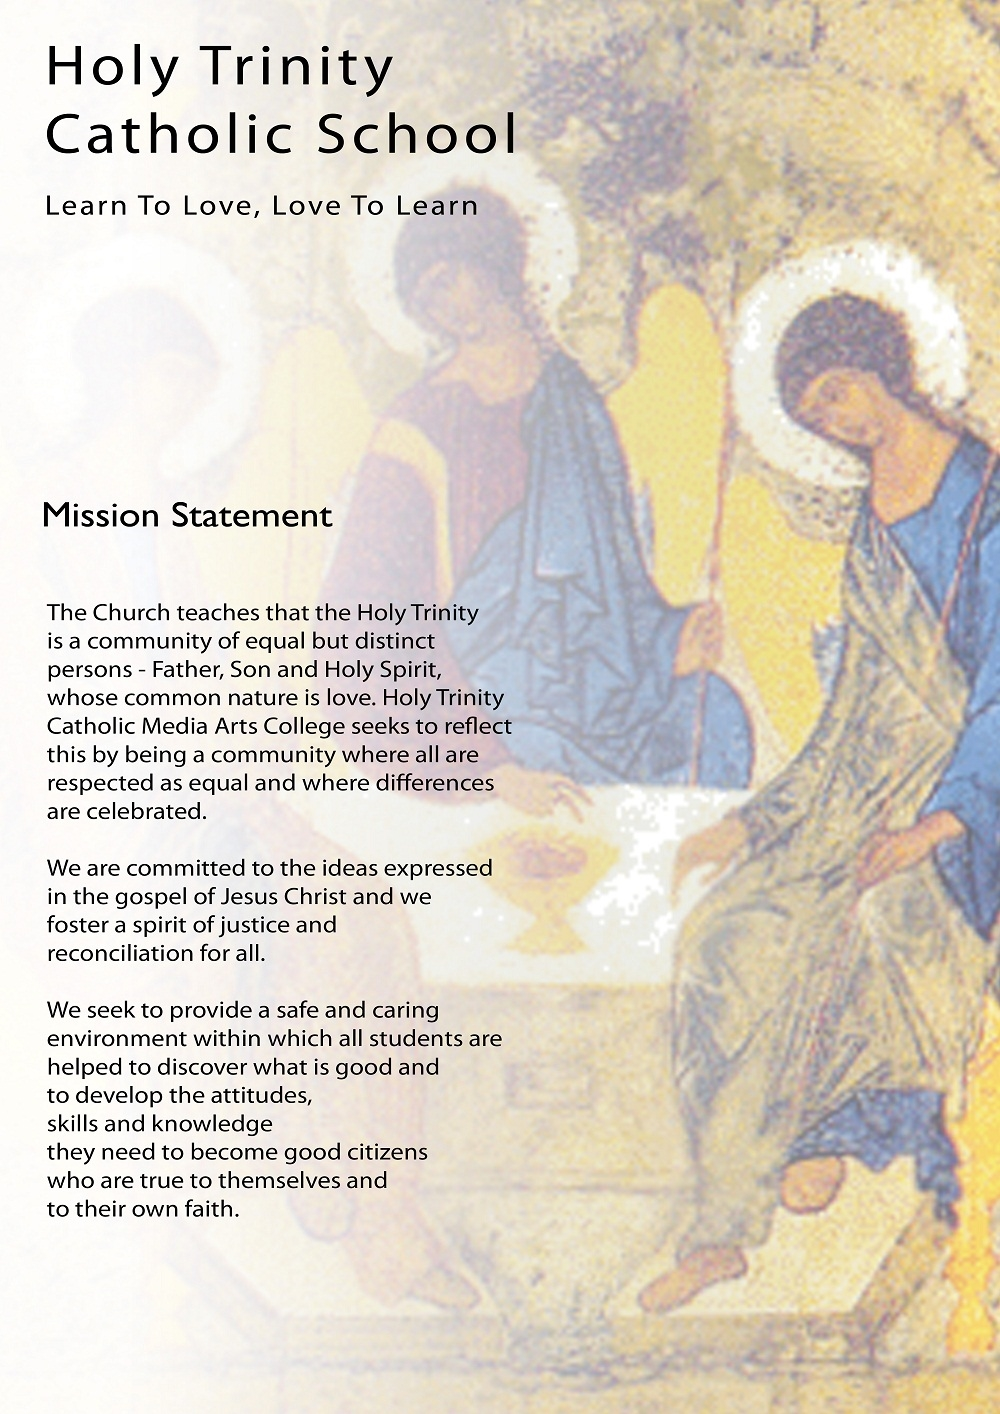 mission statement holy trinity catholic school home spiritual life mission statement